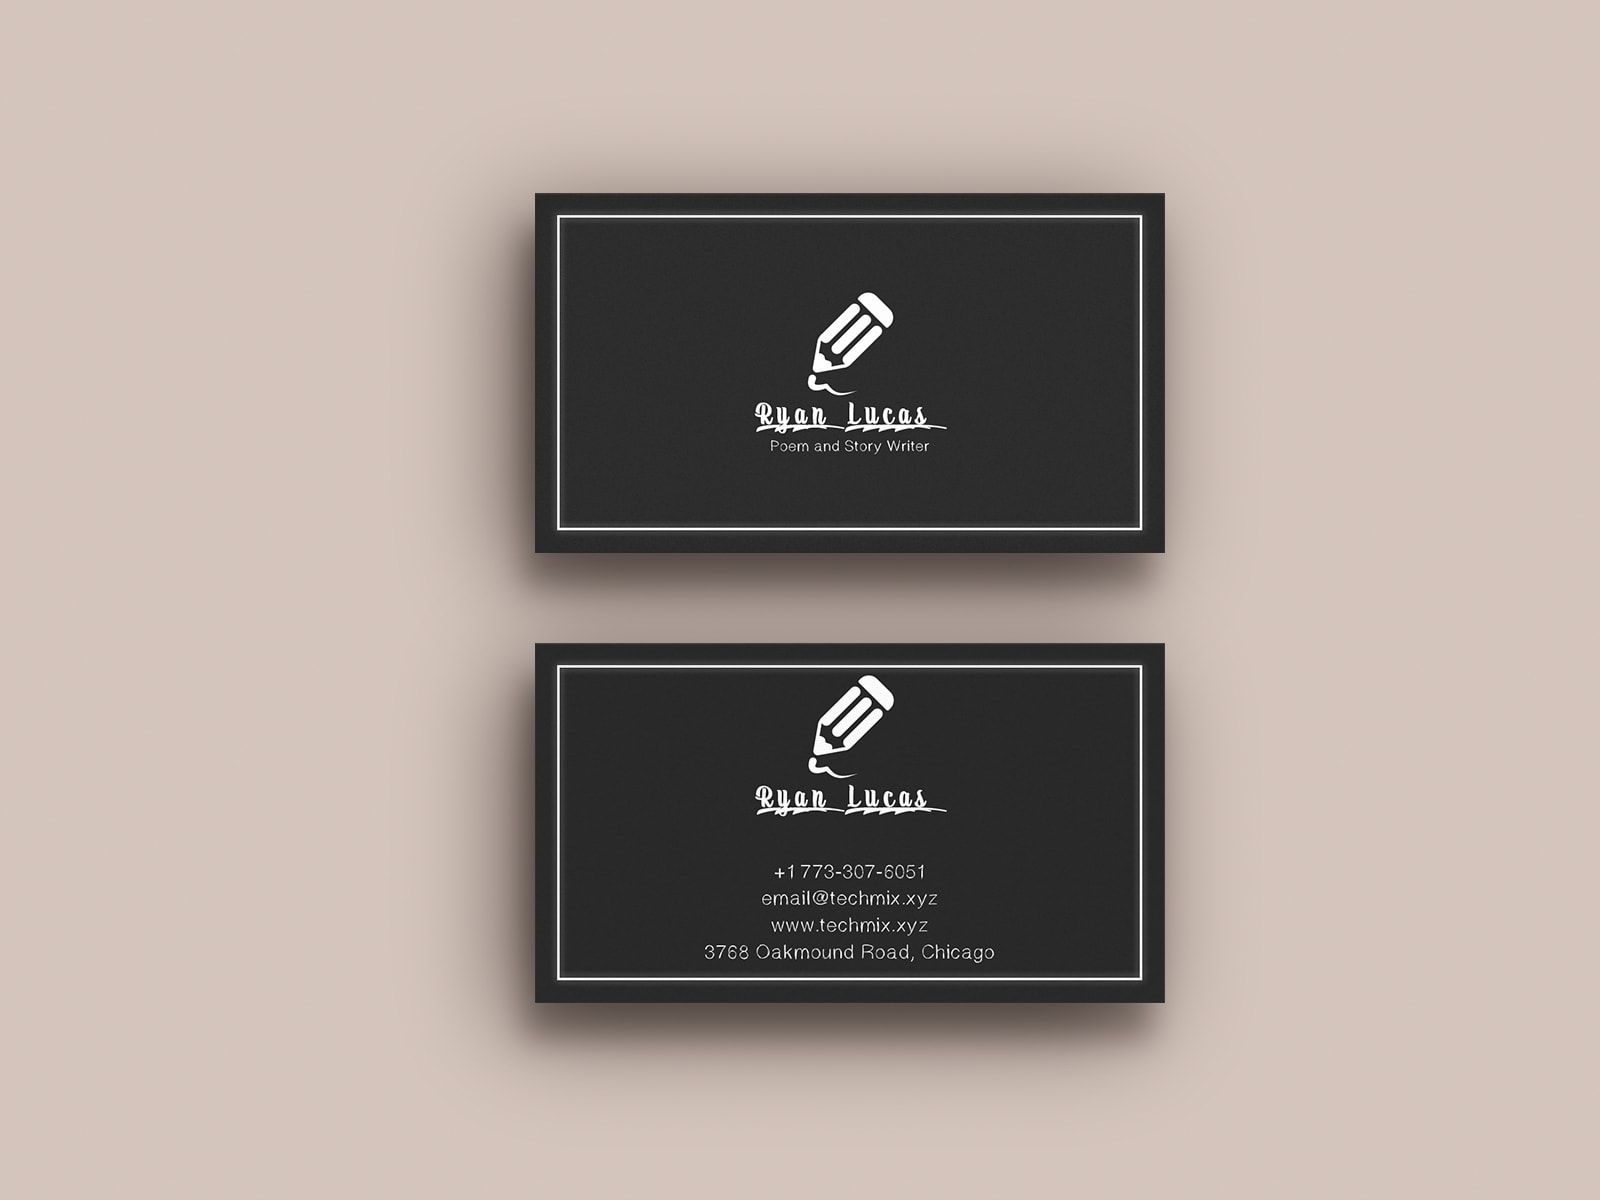 Poem and Story Writer Business Card